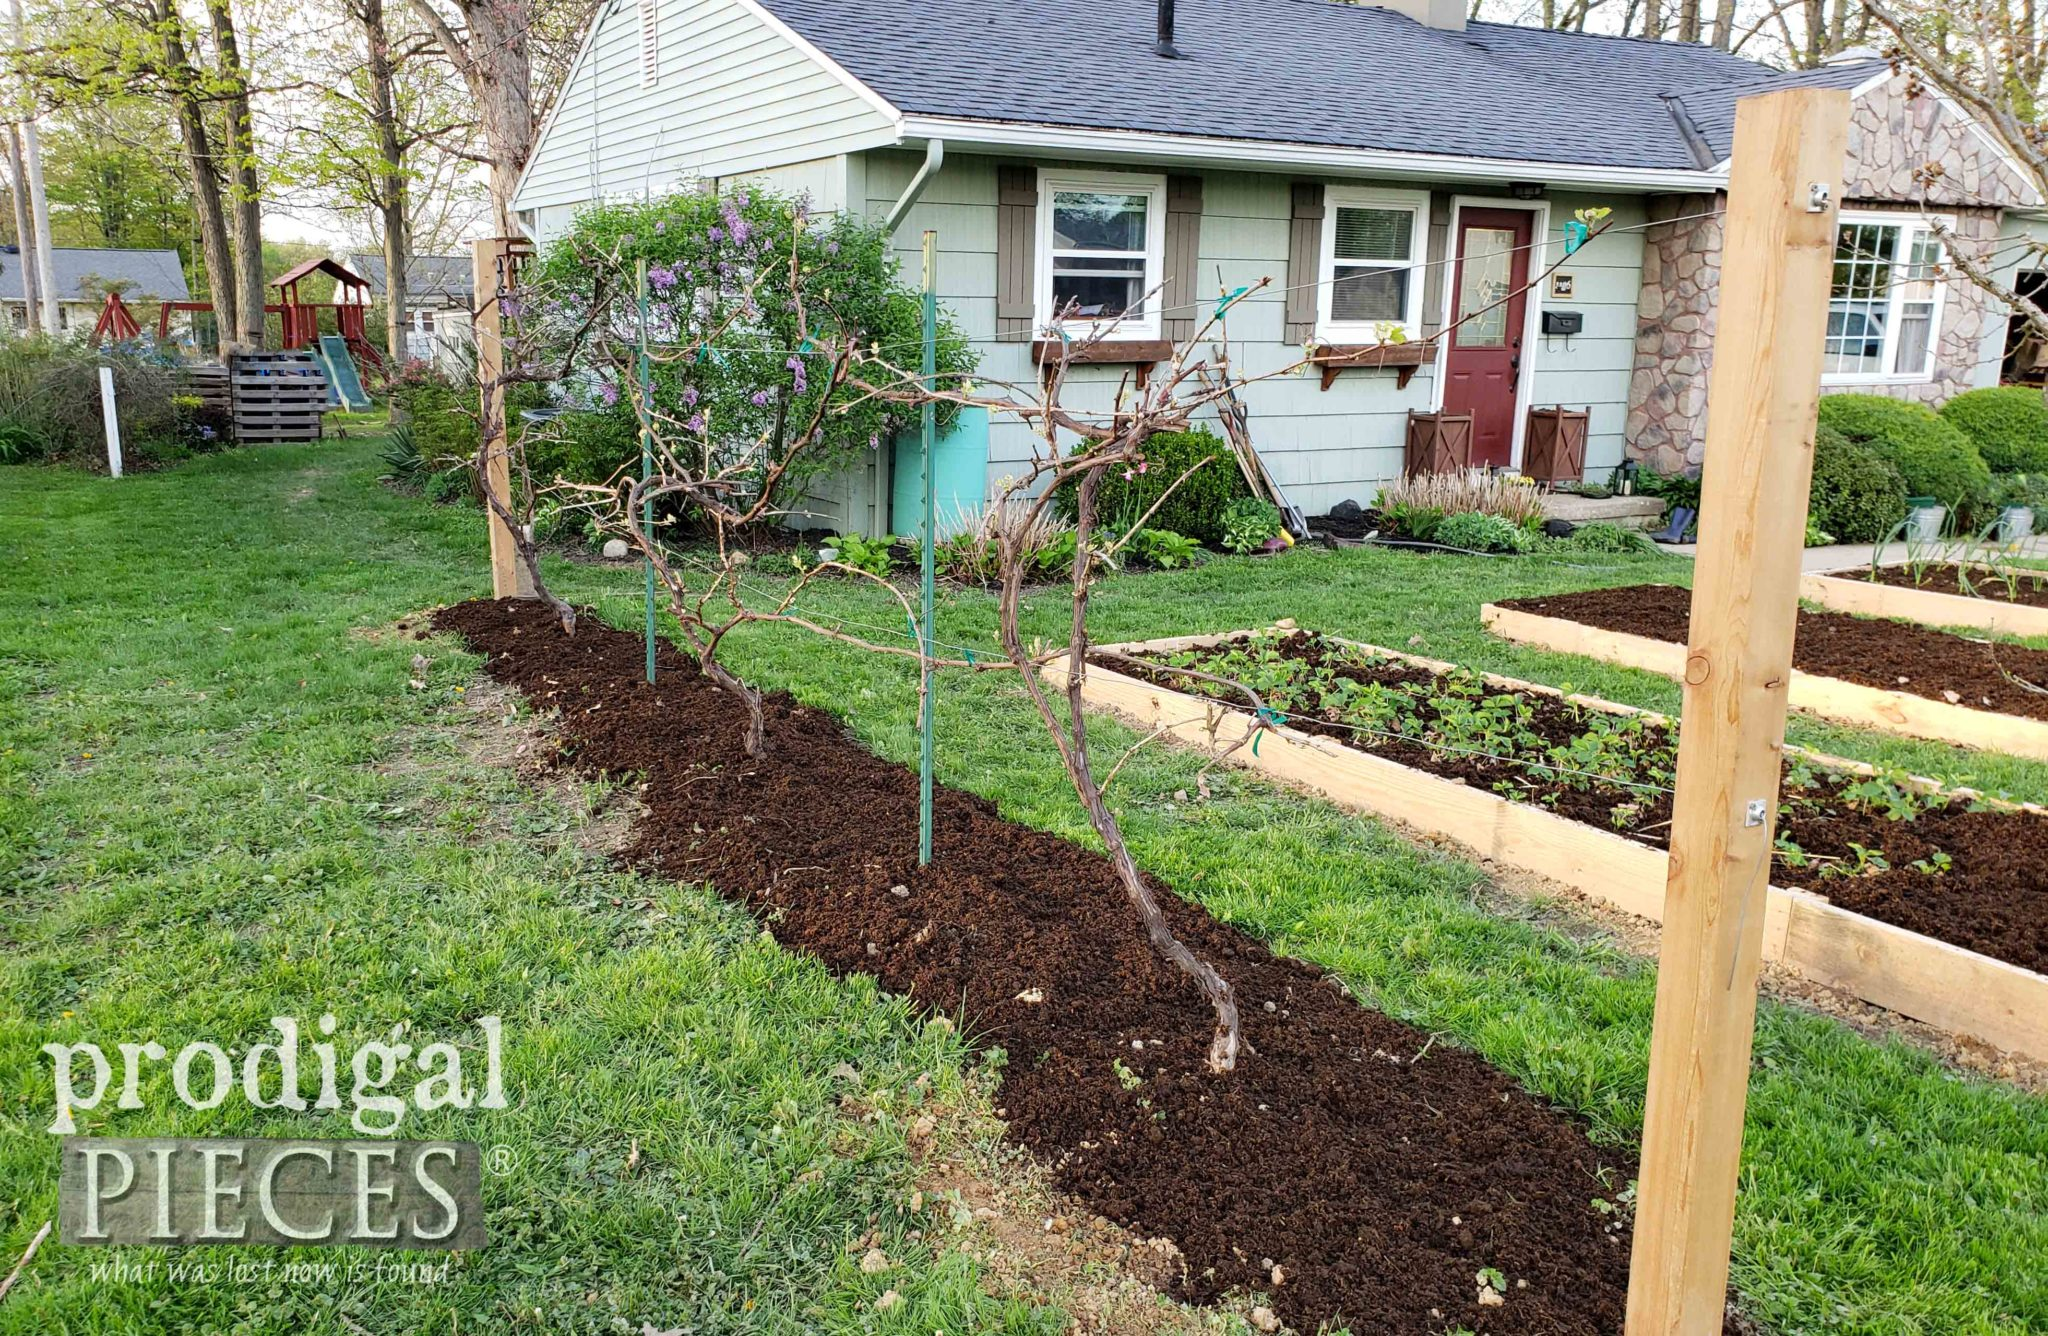 DIY Grape Arbor using espalier trellis method | prodigalpieces.com #prodigalpieces #garden